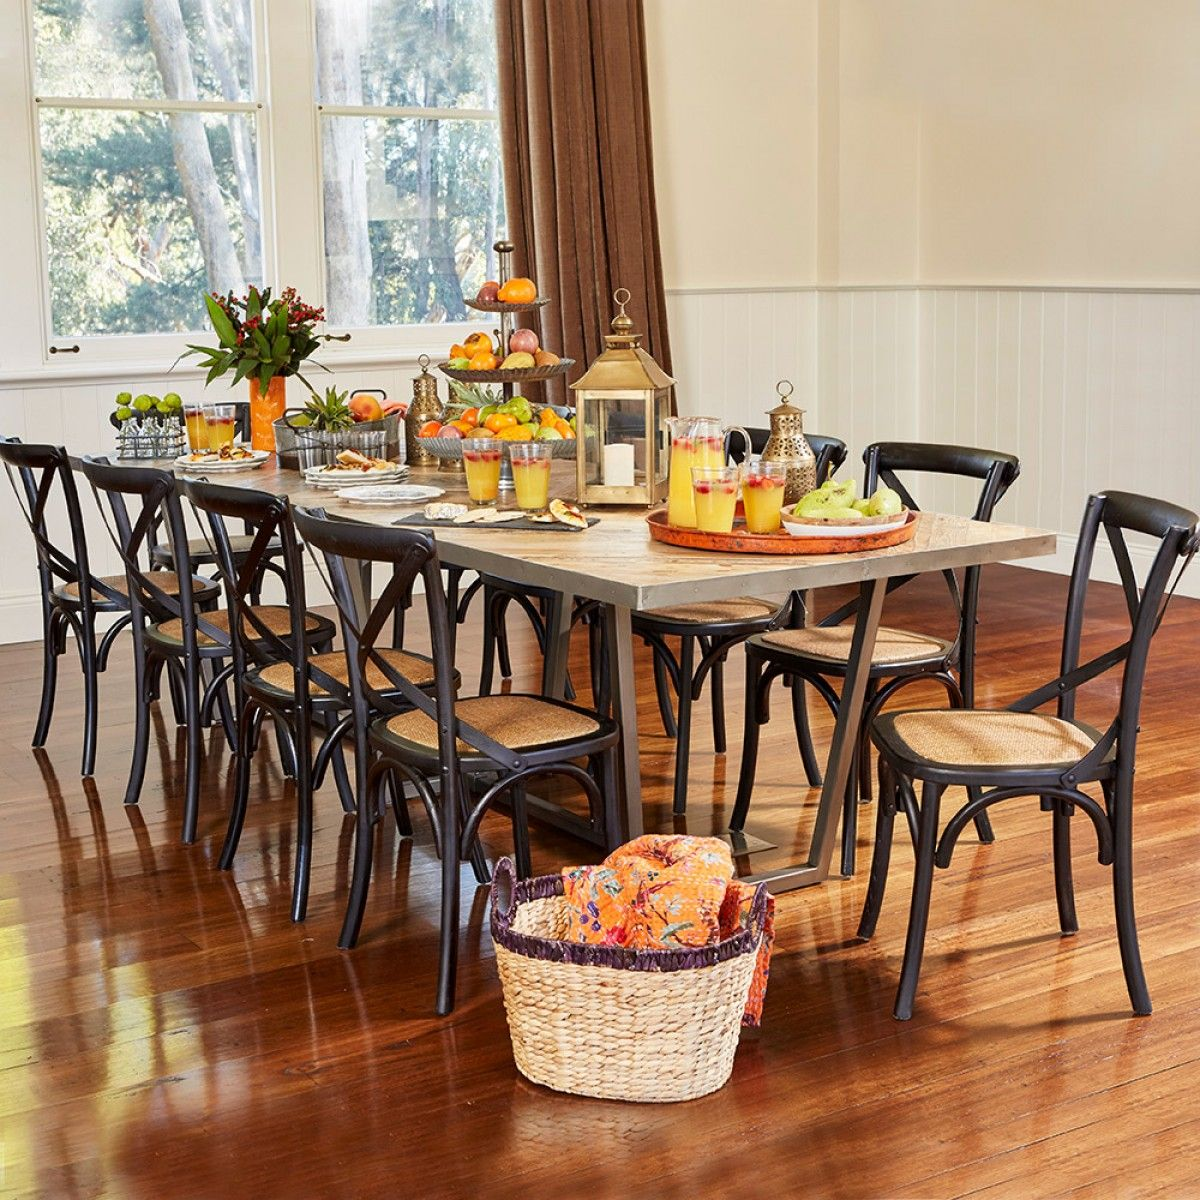 Ikan Dining Table 300X100 - Iron Feet Recycled Pallet Pine ...